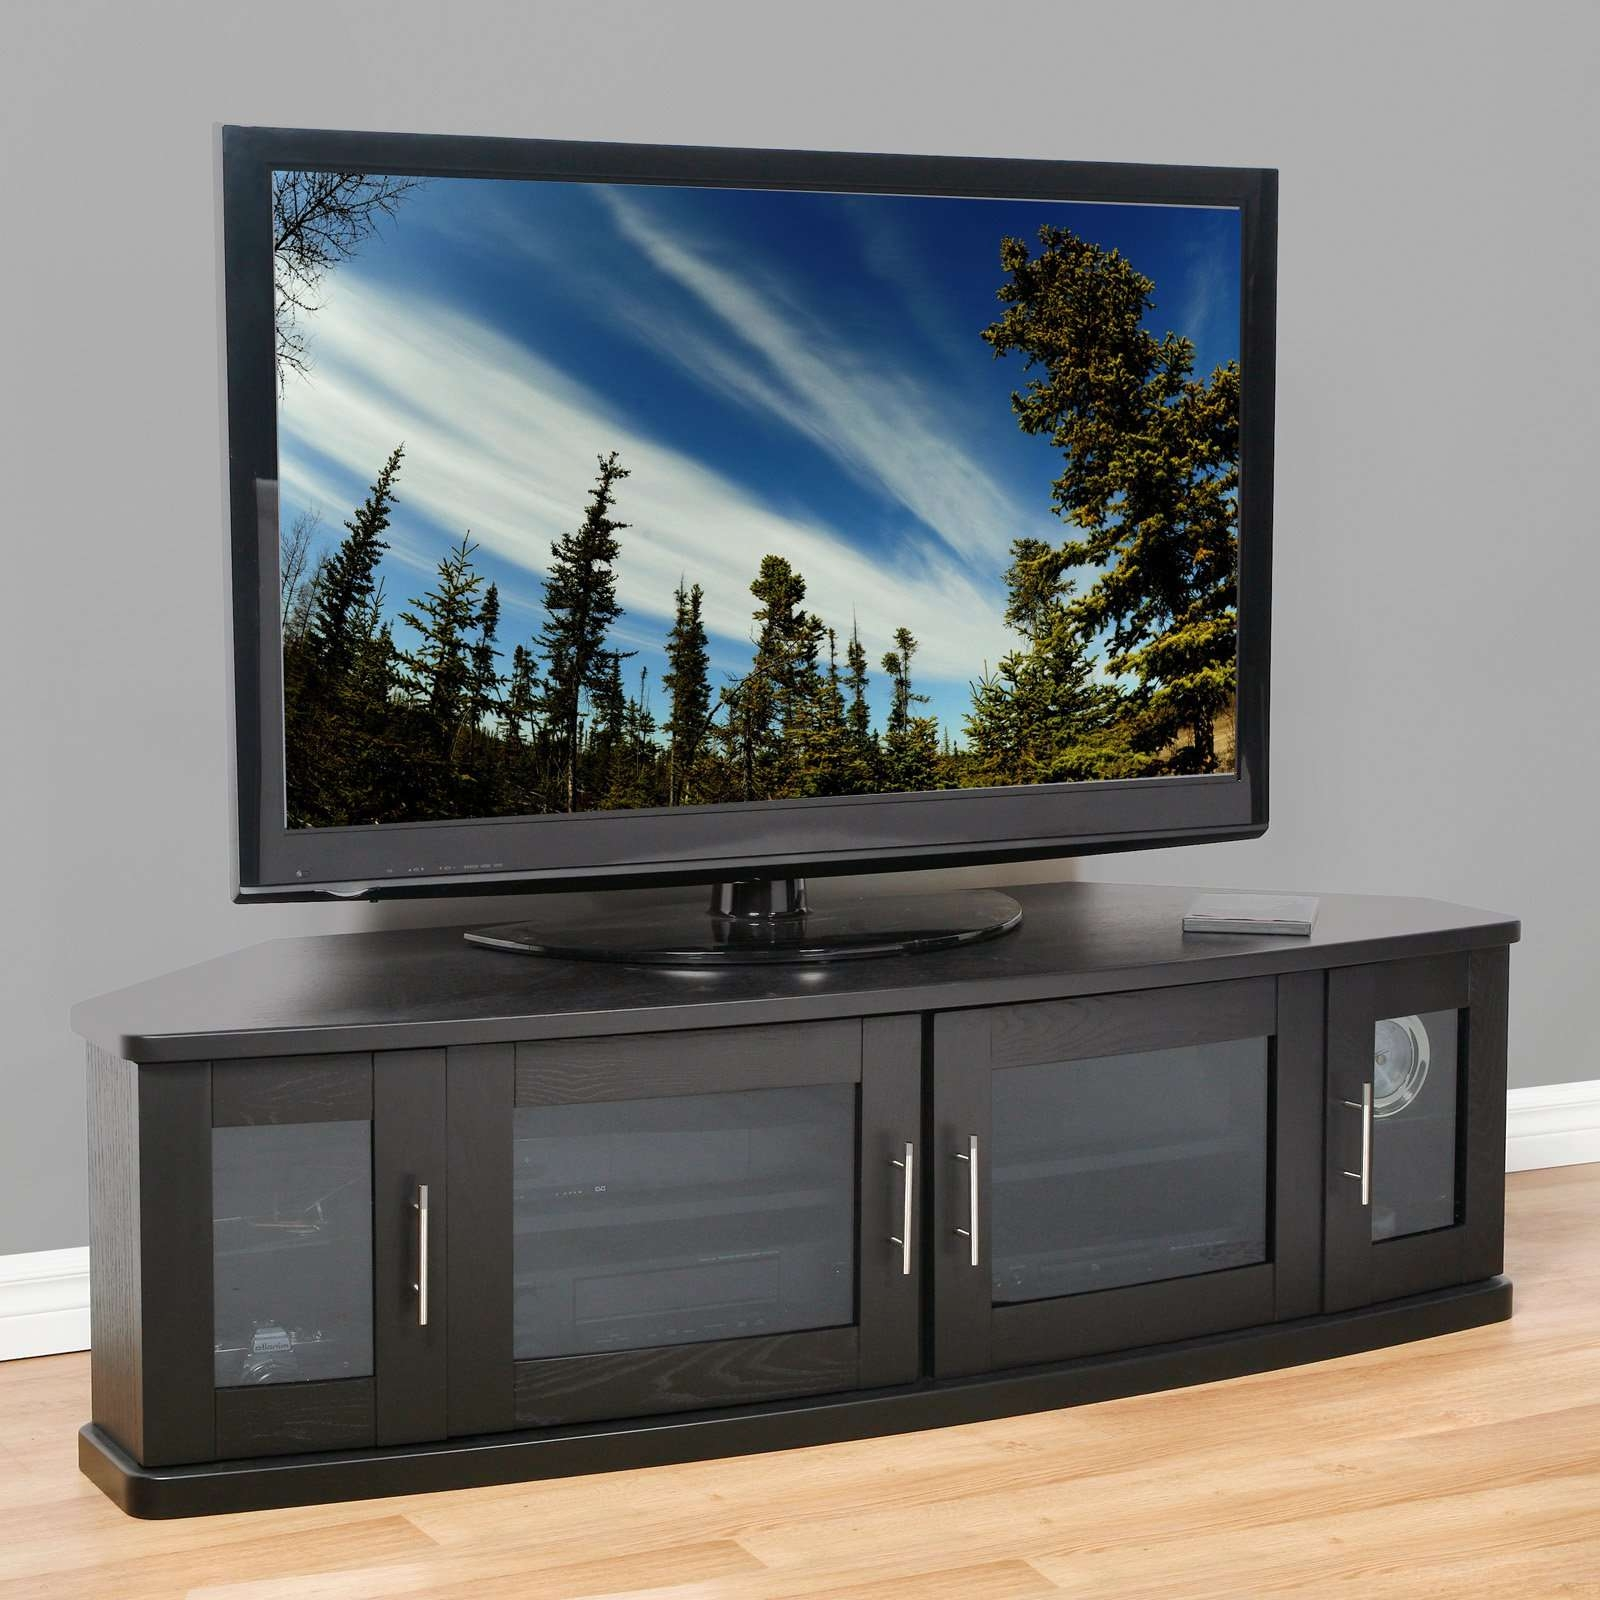 Plateau Newport 62 Inch Corner Tv Stand In Black – Walmart With Black Corner Tv Cabinets (View 15 of 20)